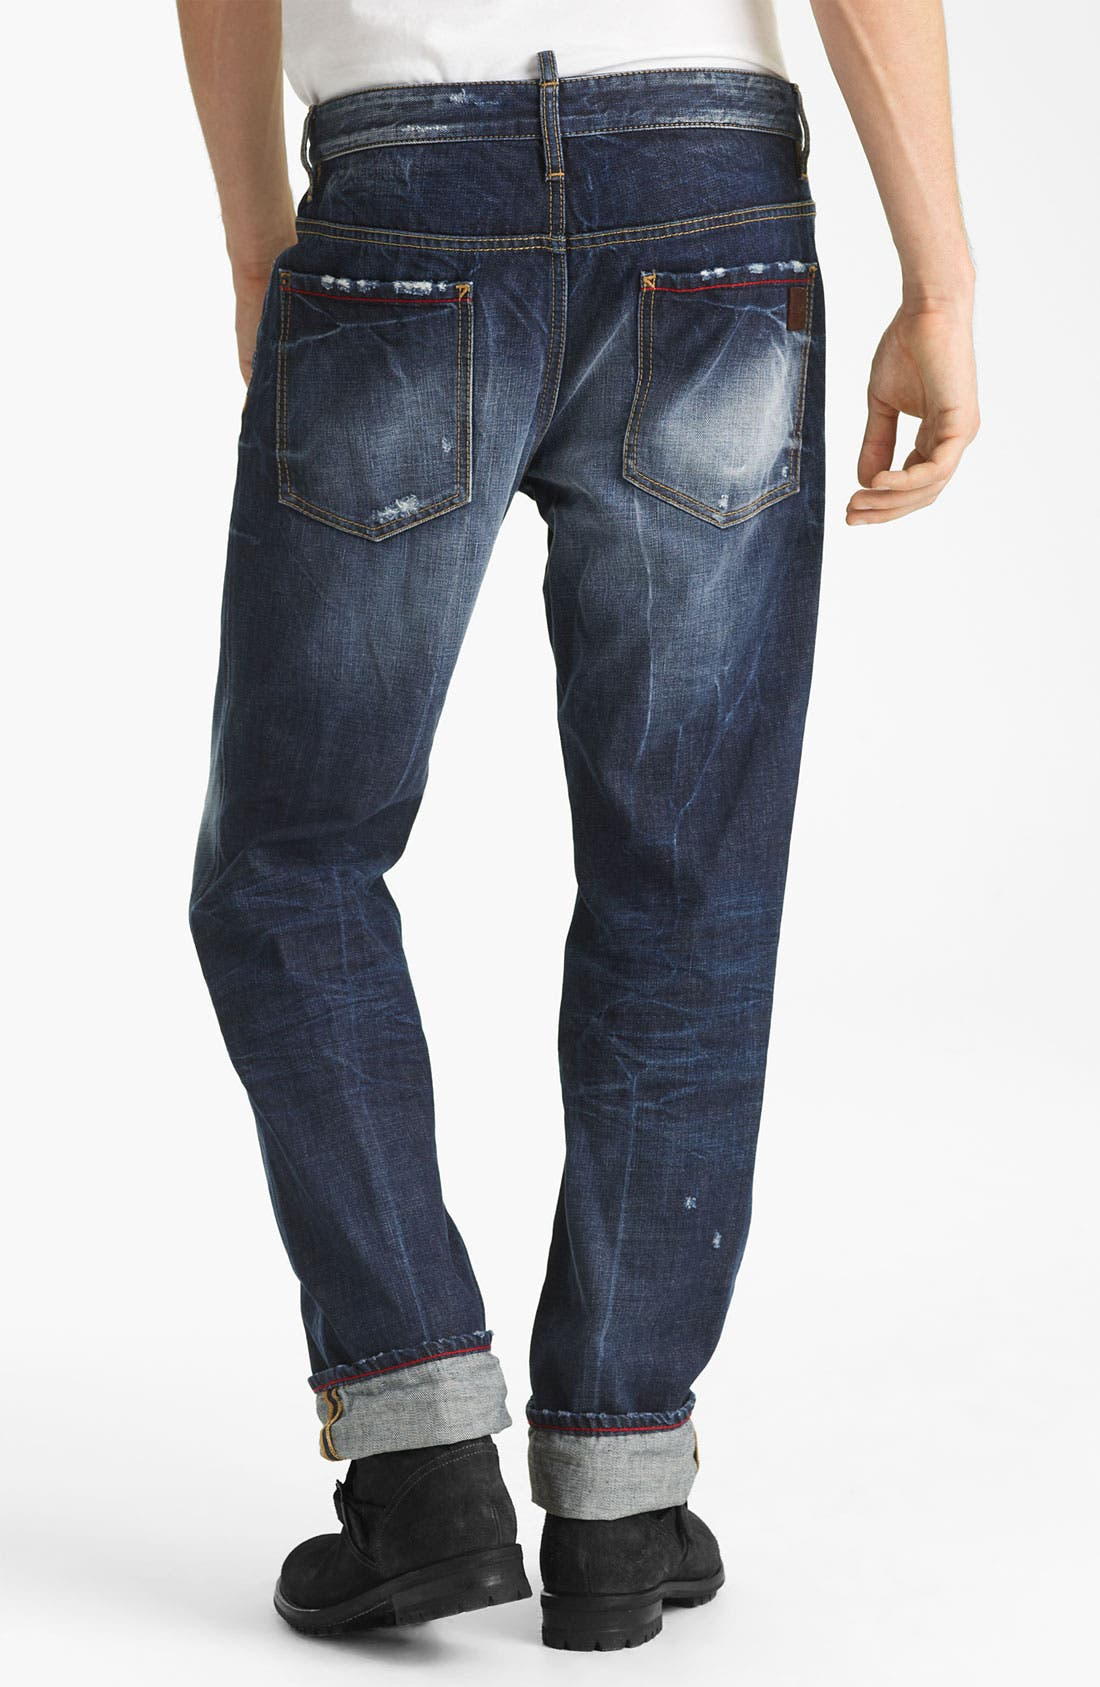 Alternate Image 1 Selected - Dsquared2 'Dean' Straight Leg Jeans (Blue Wash)